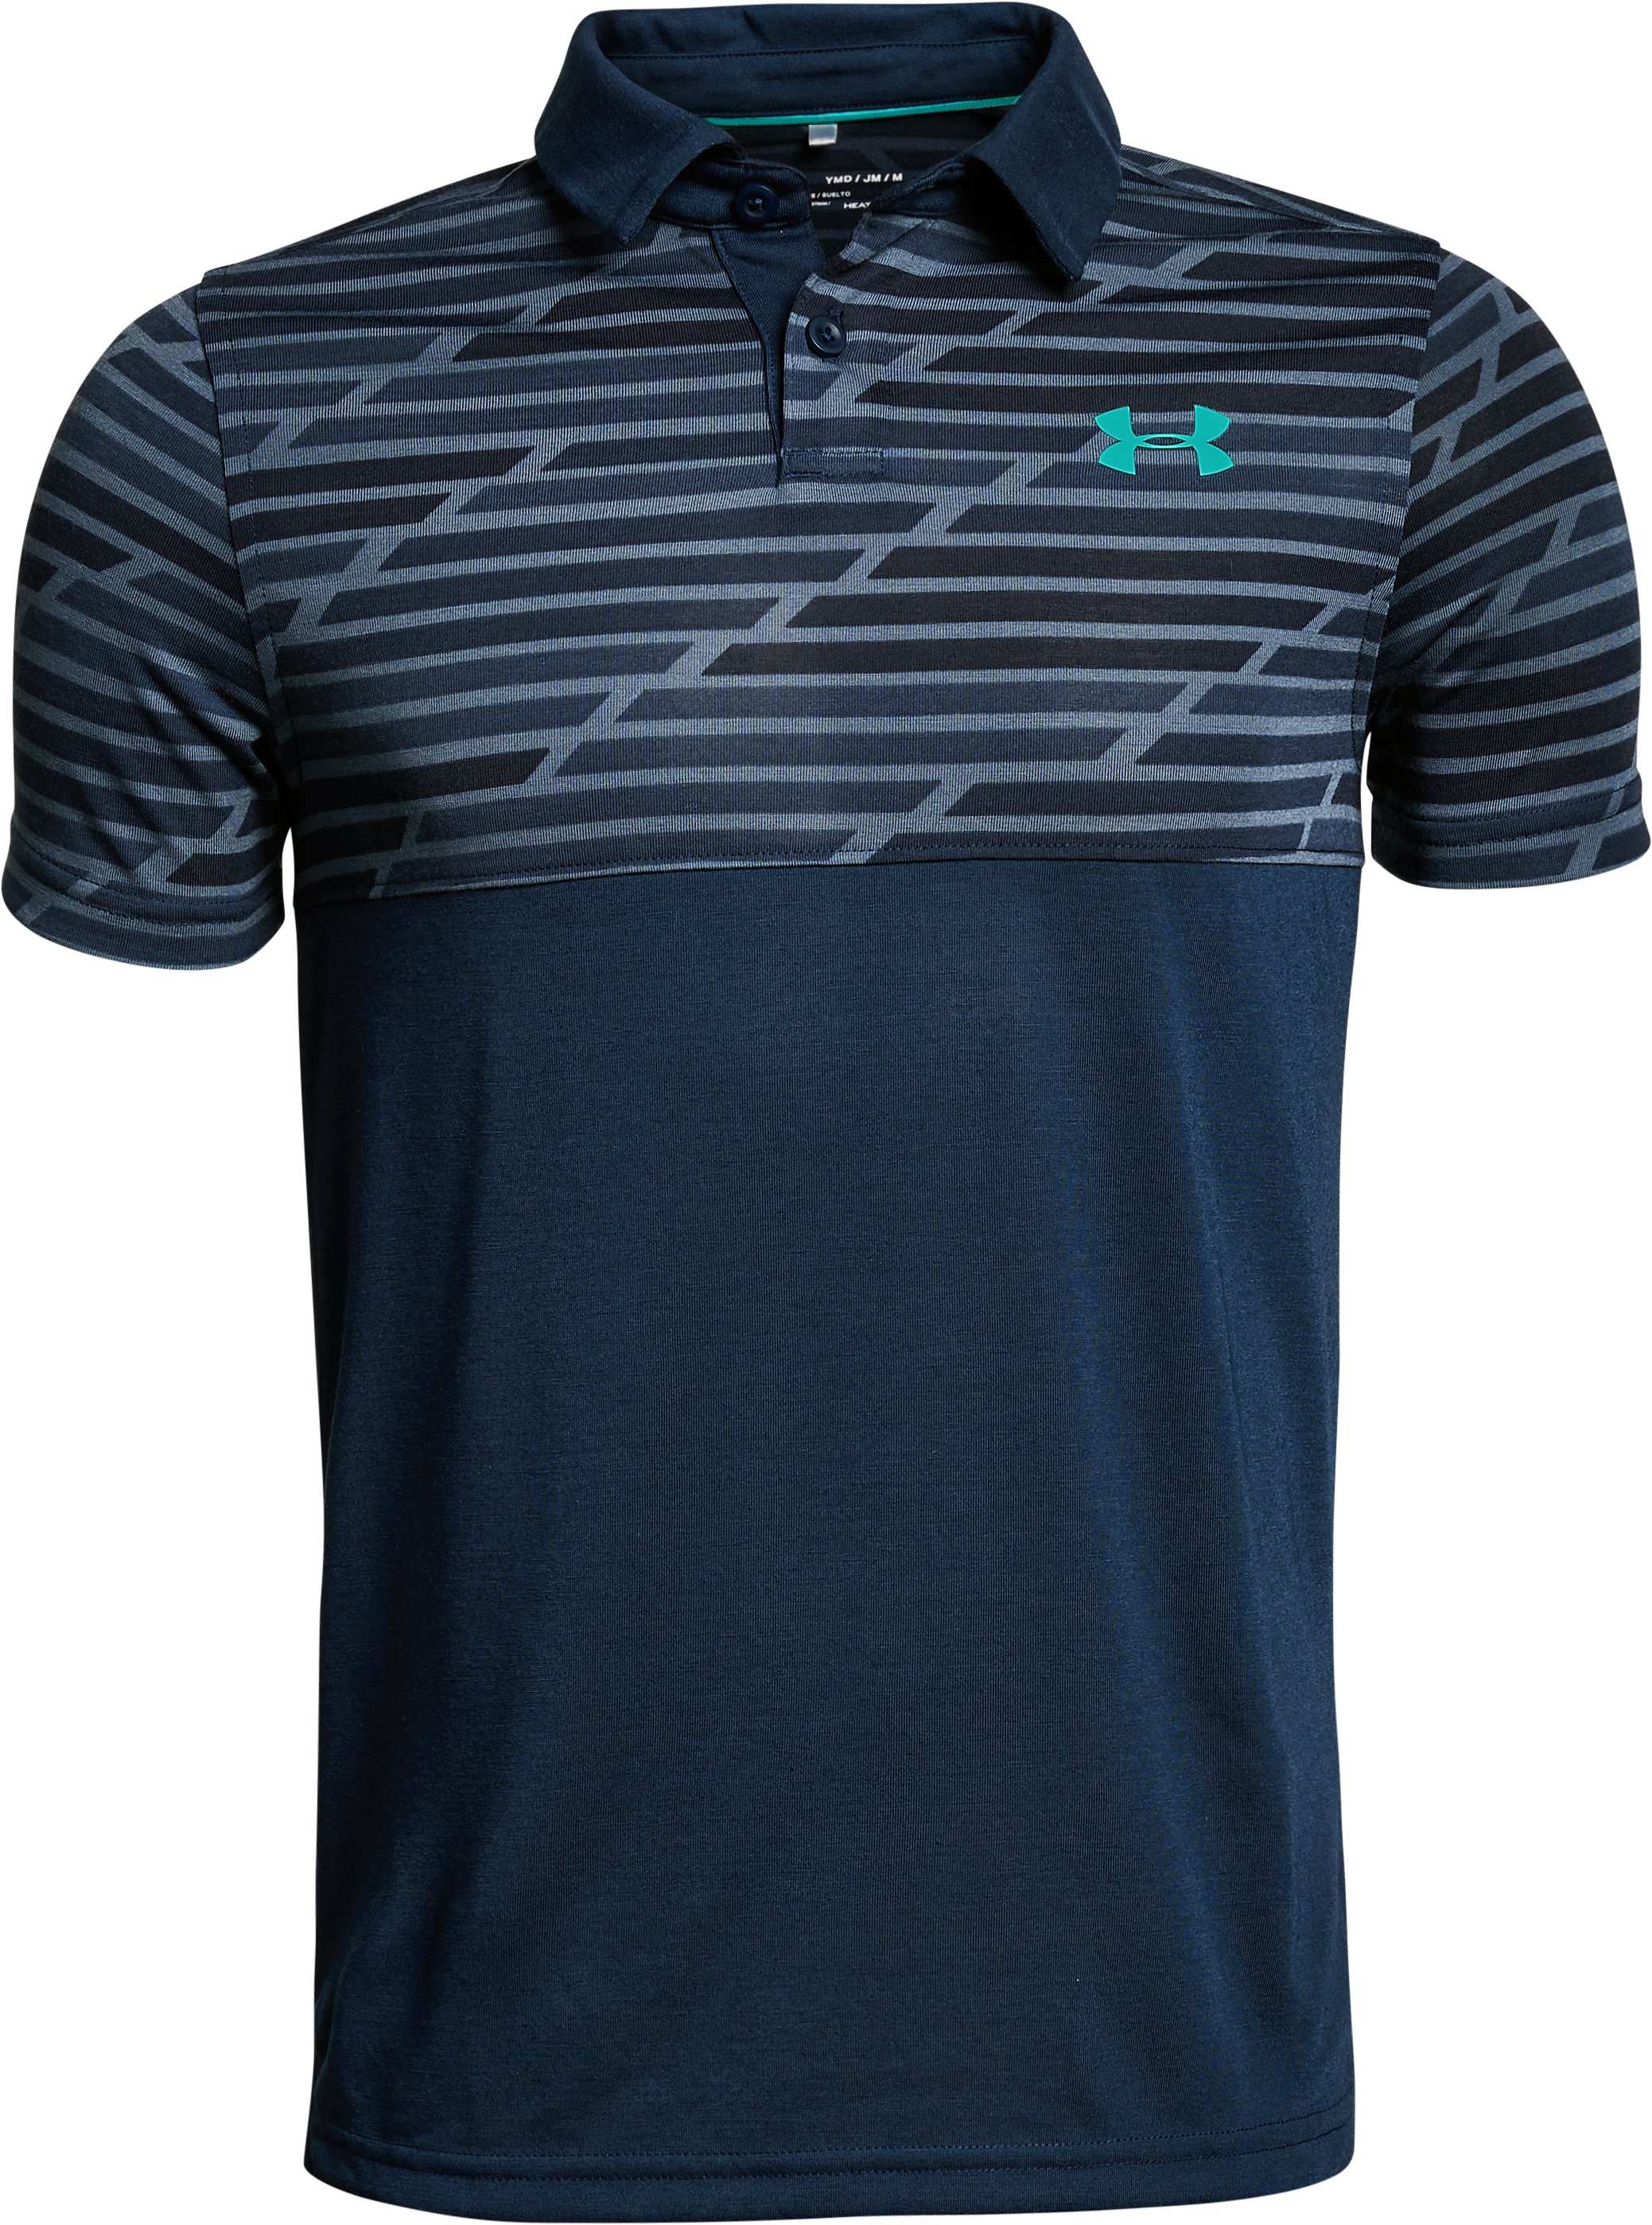 Boys' UA Threadborne Blocked Polo, Academy